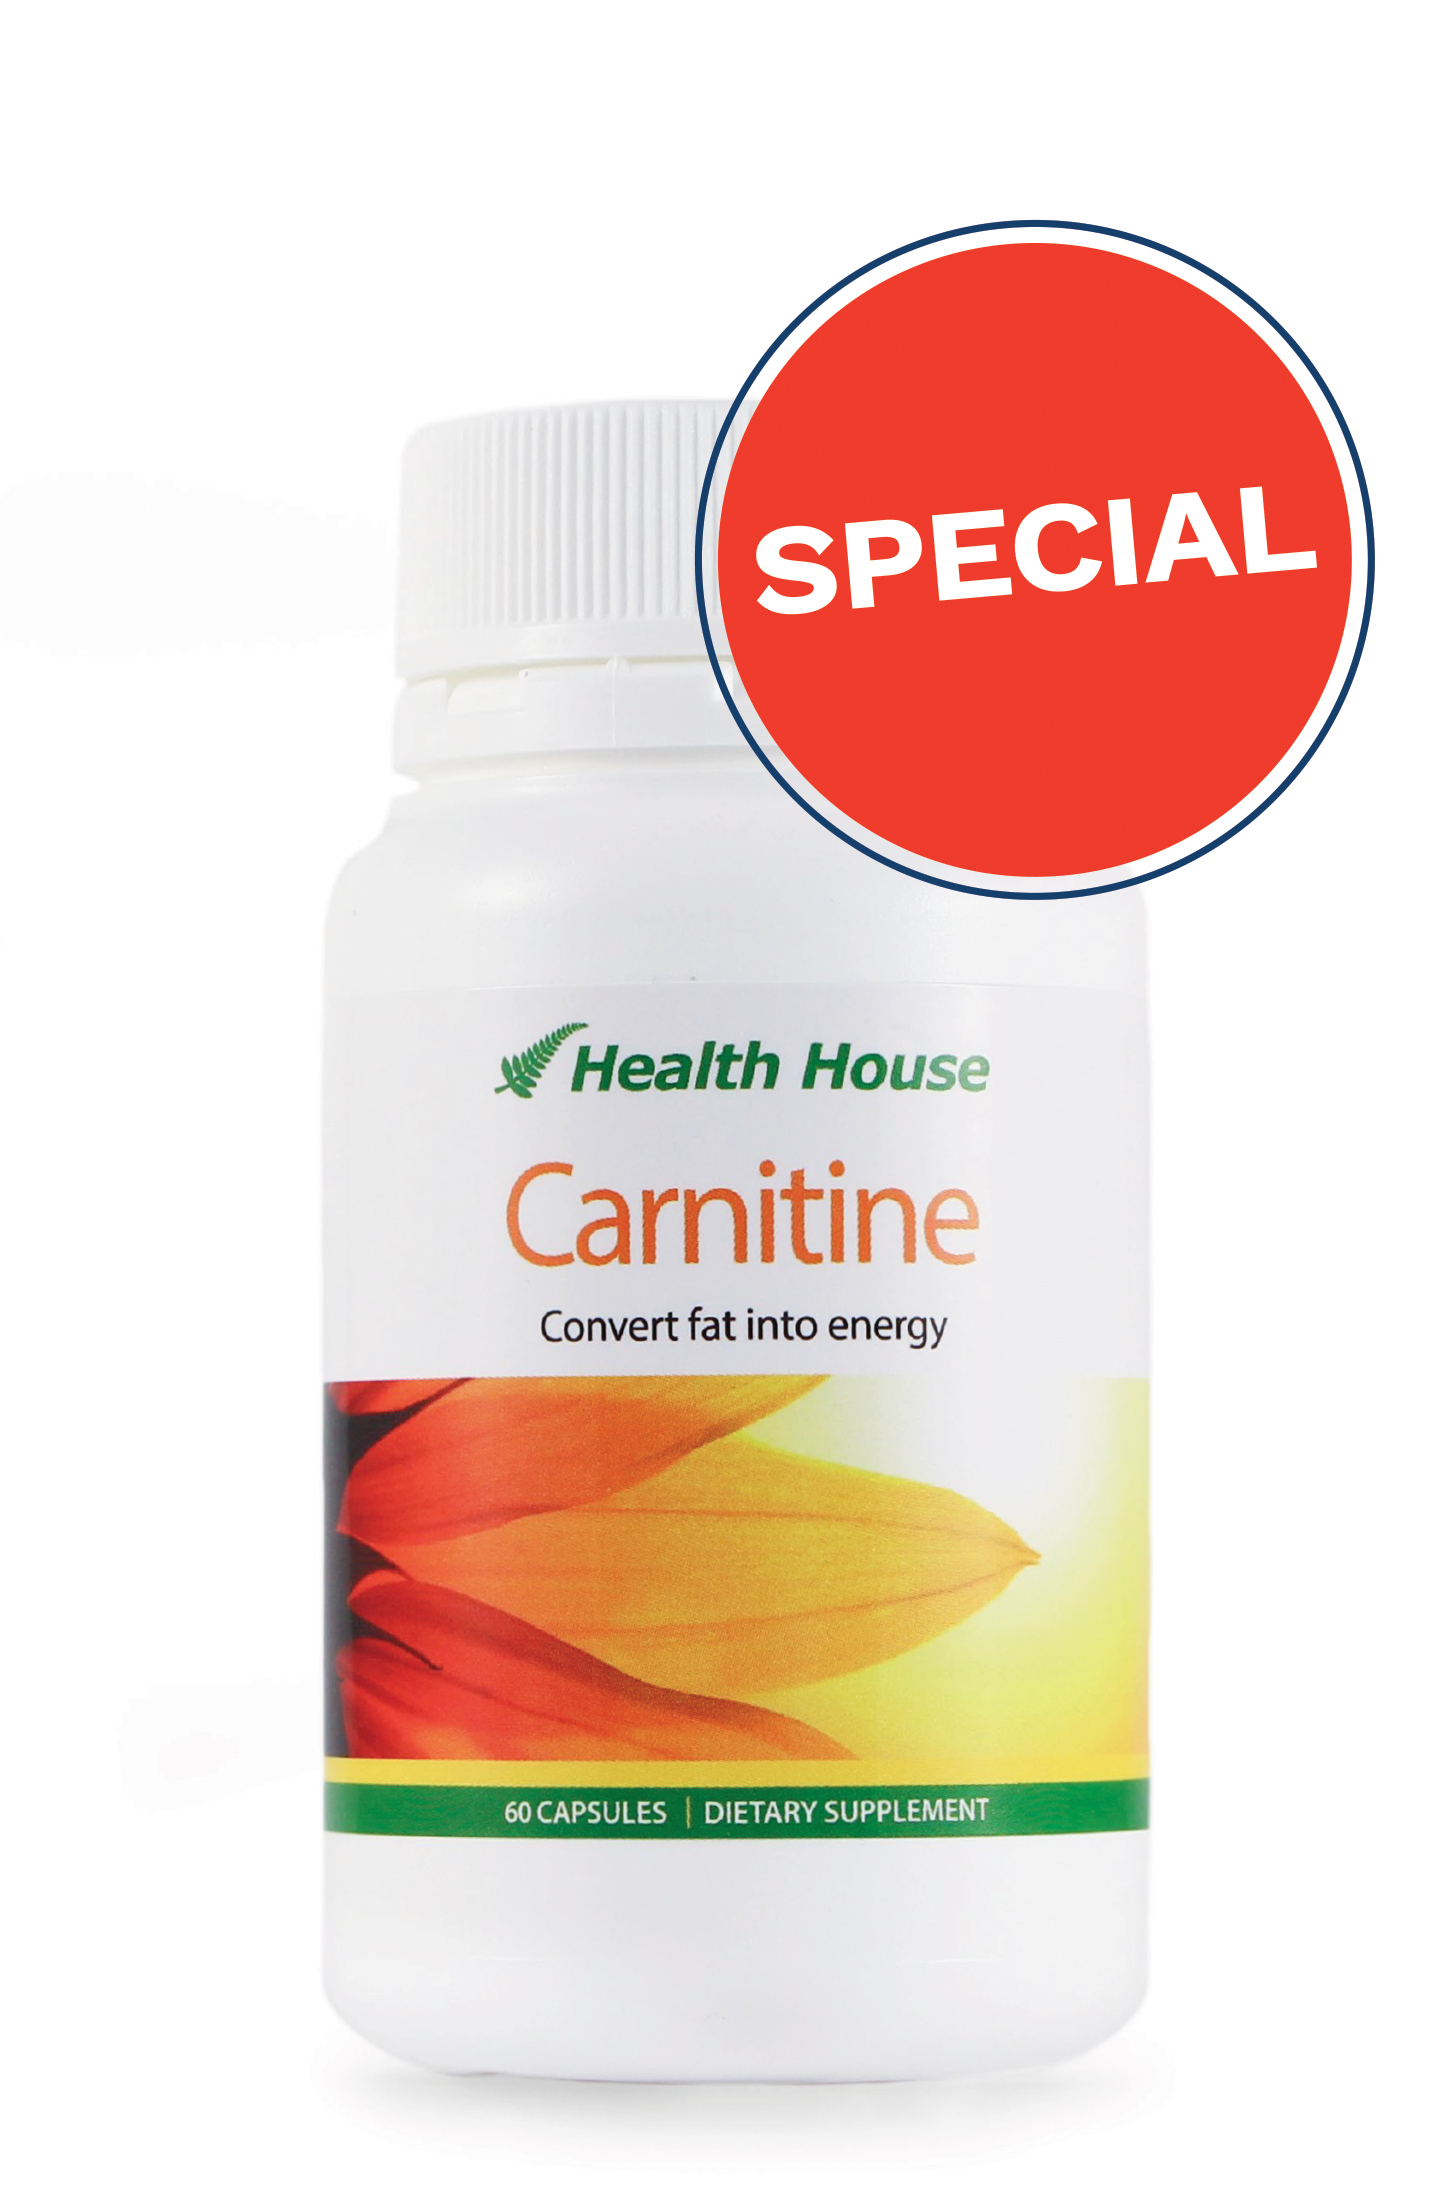 Carnitine helps your body burn calories even while you sleep.